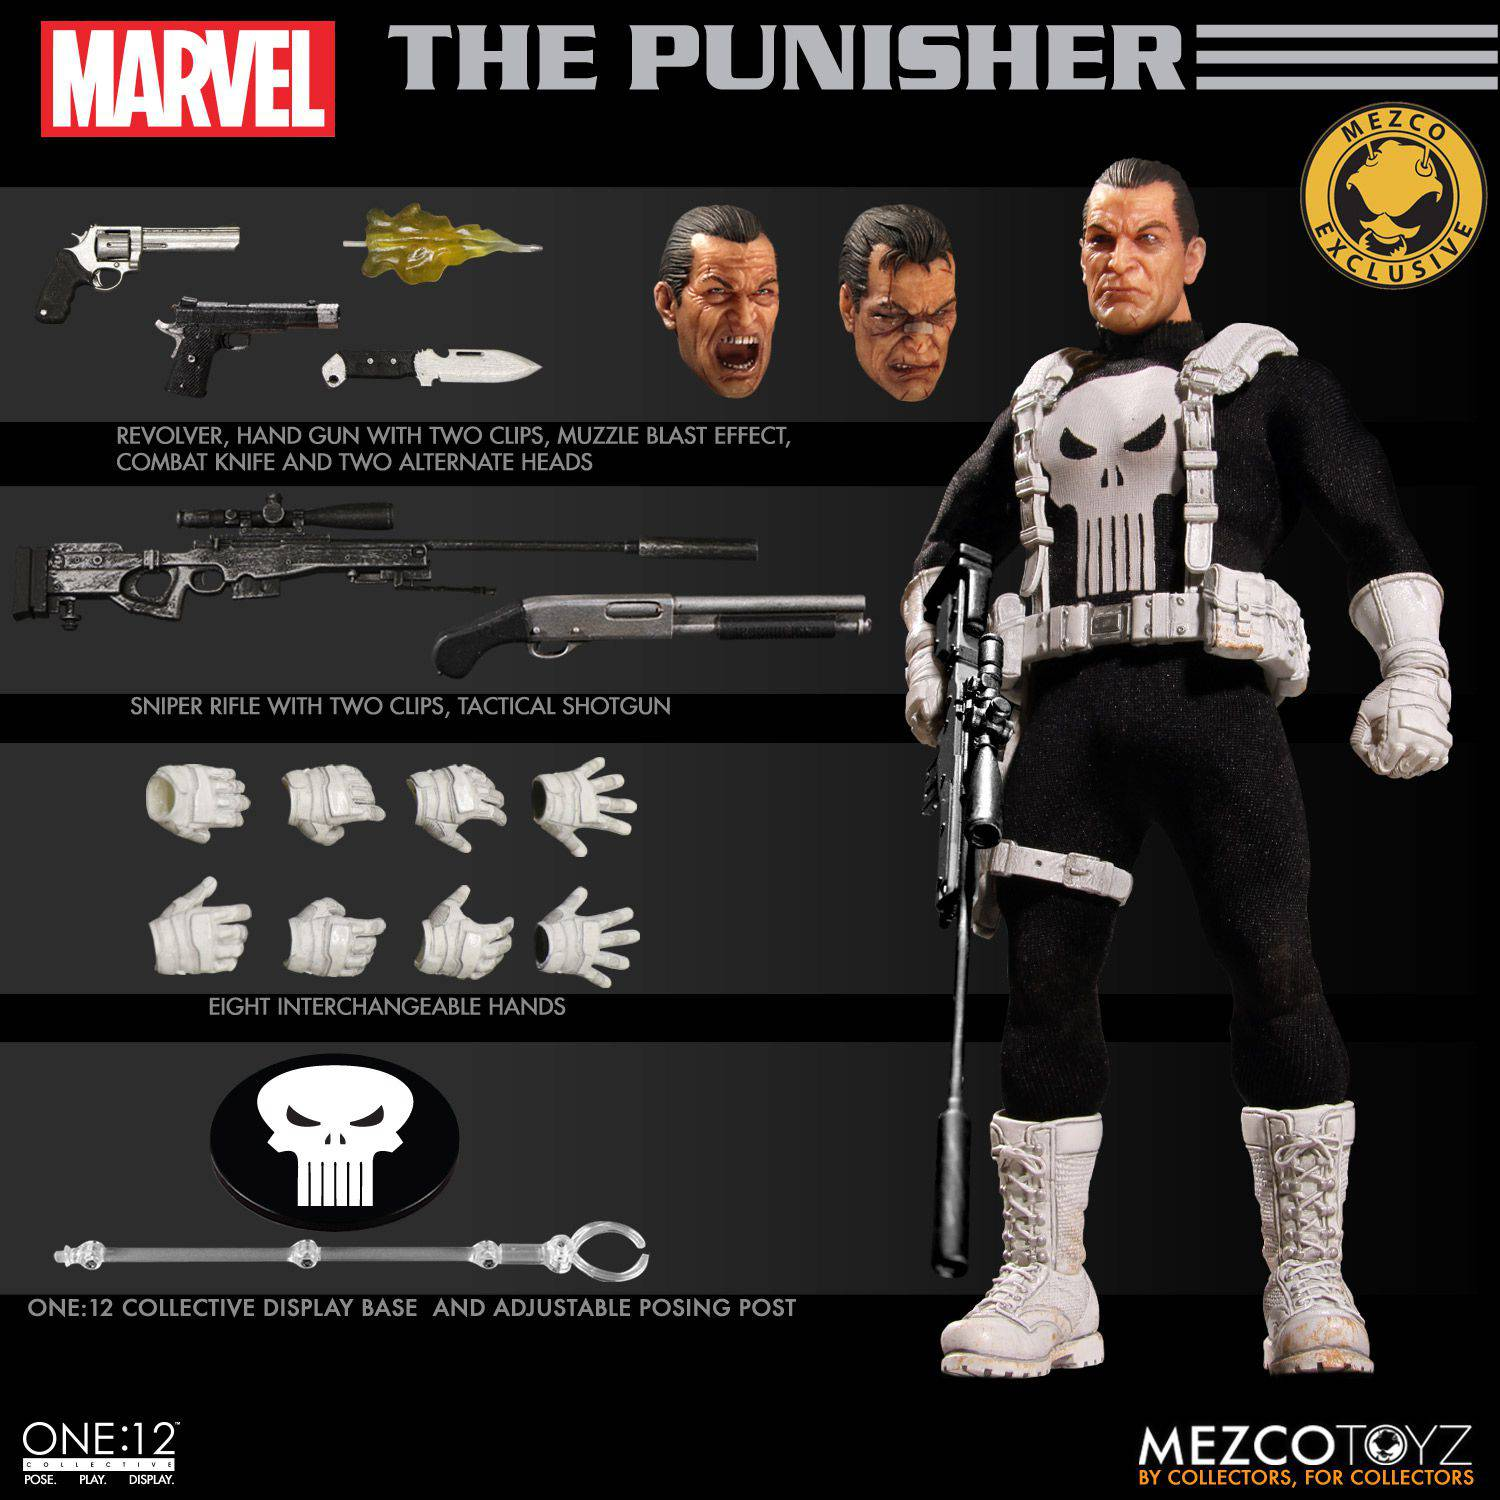 Mezco-Classic-Punisher-014